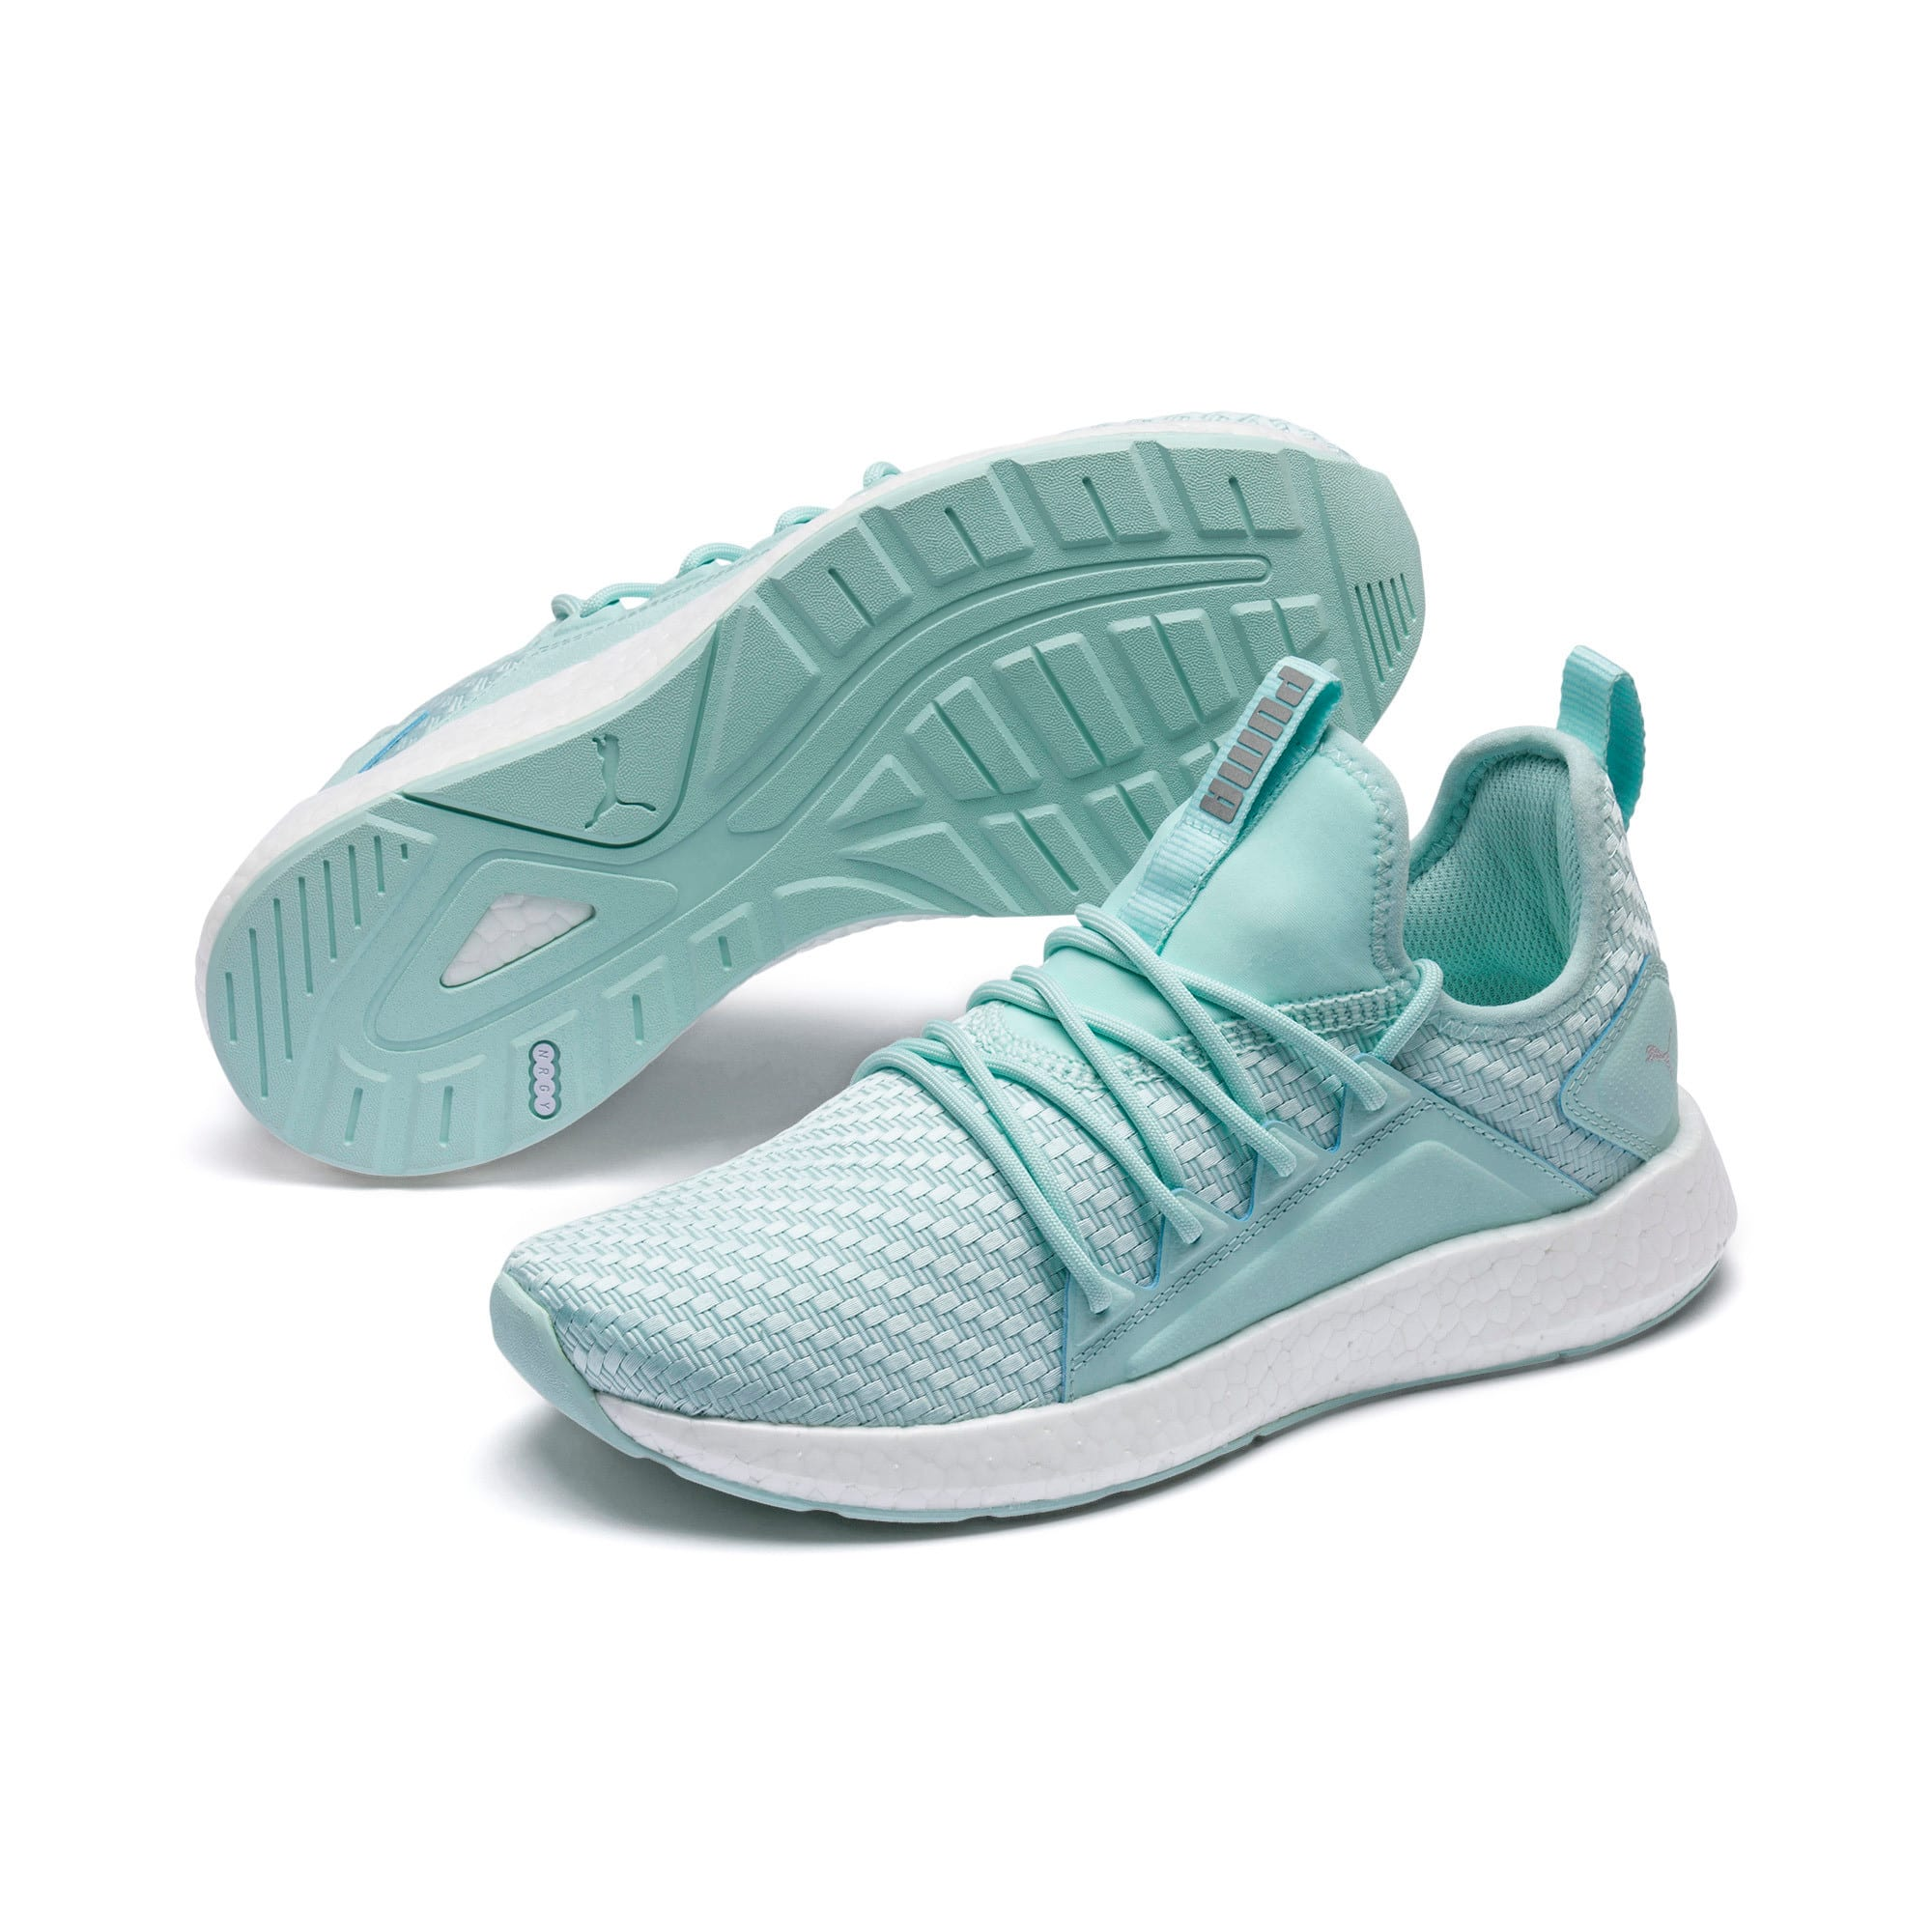 Thumbnail 2 of NRGY Neko Cosmic Women's Running Trainers, Fair Aqua-Puma White, medium